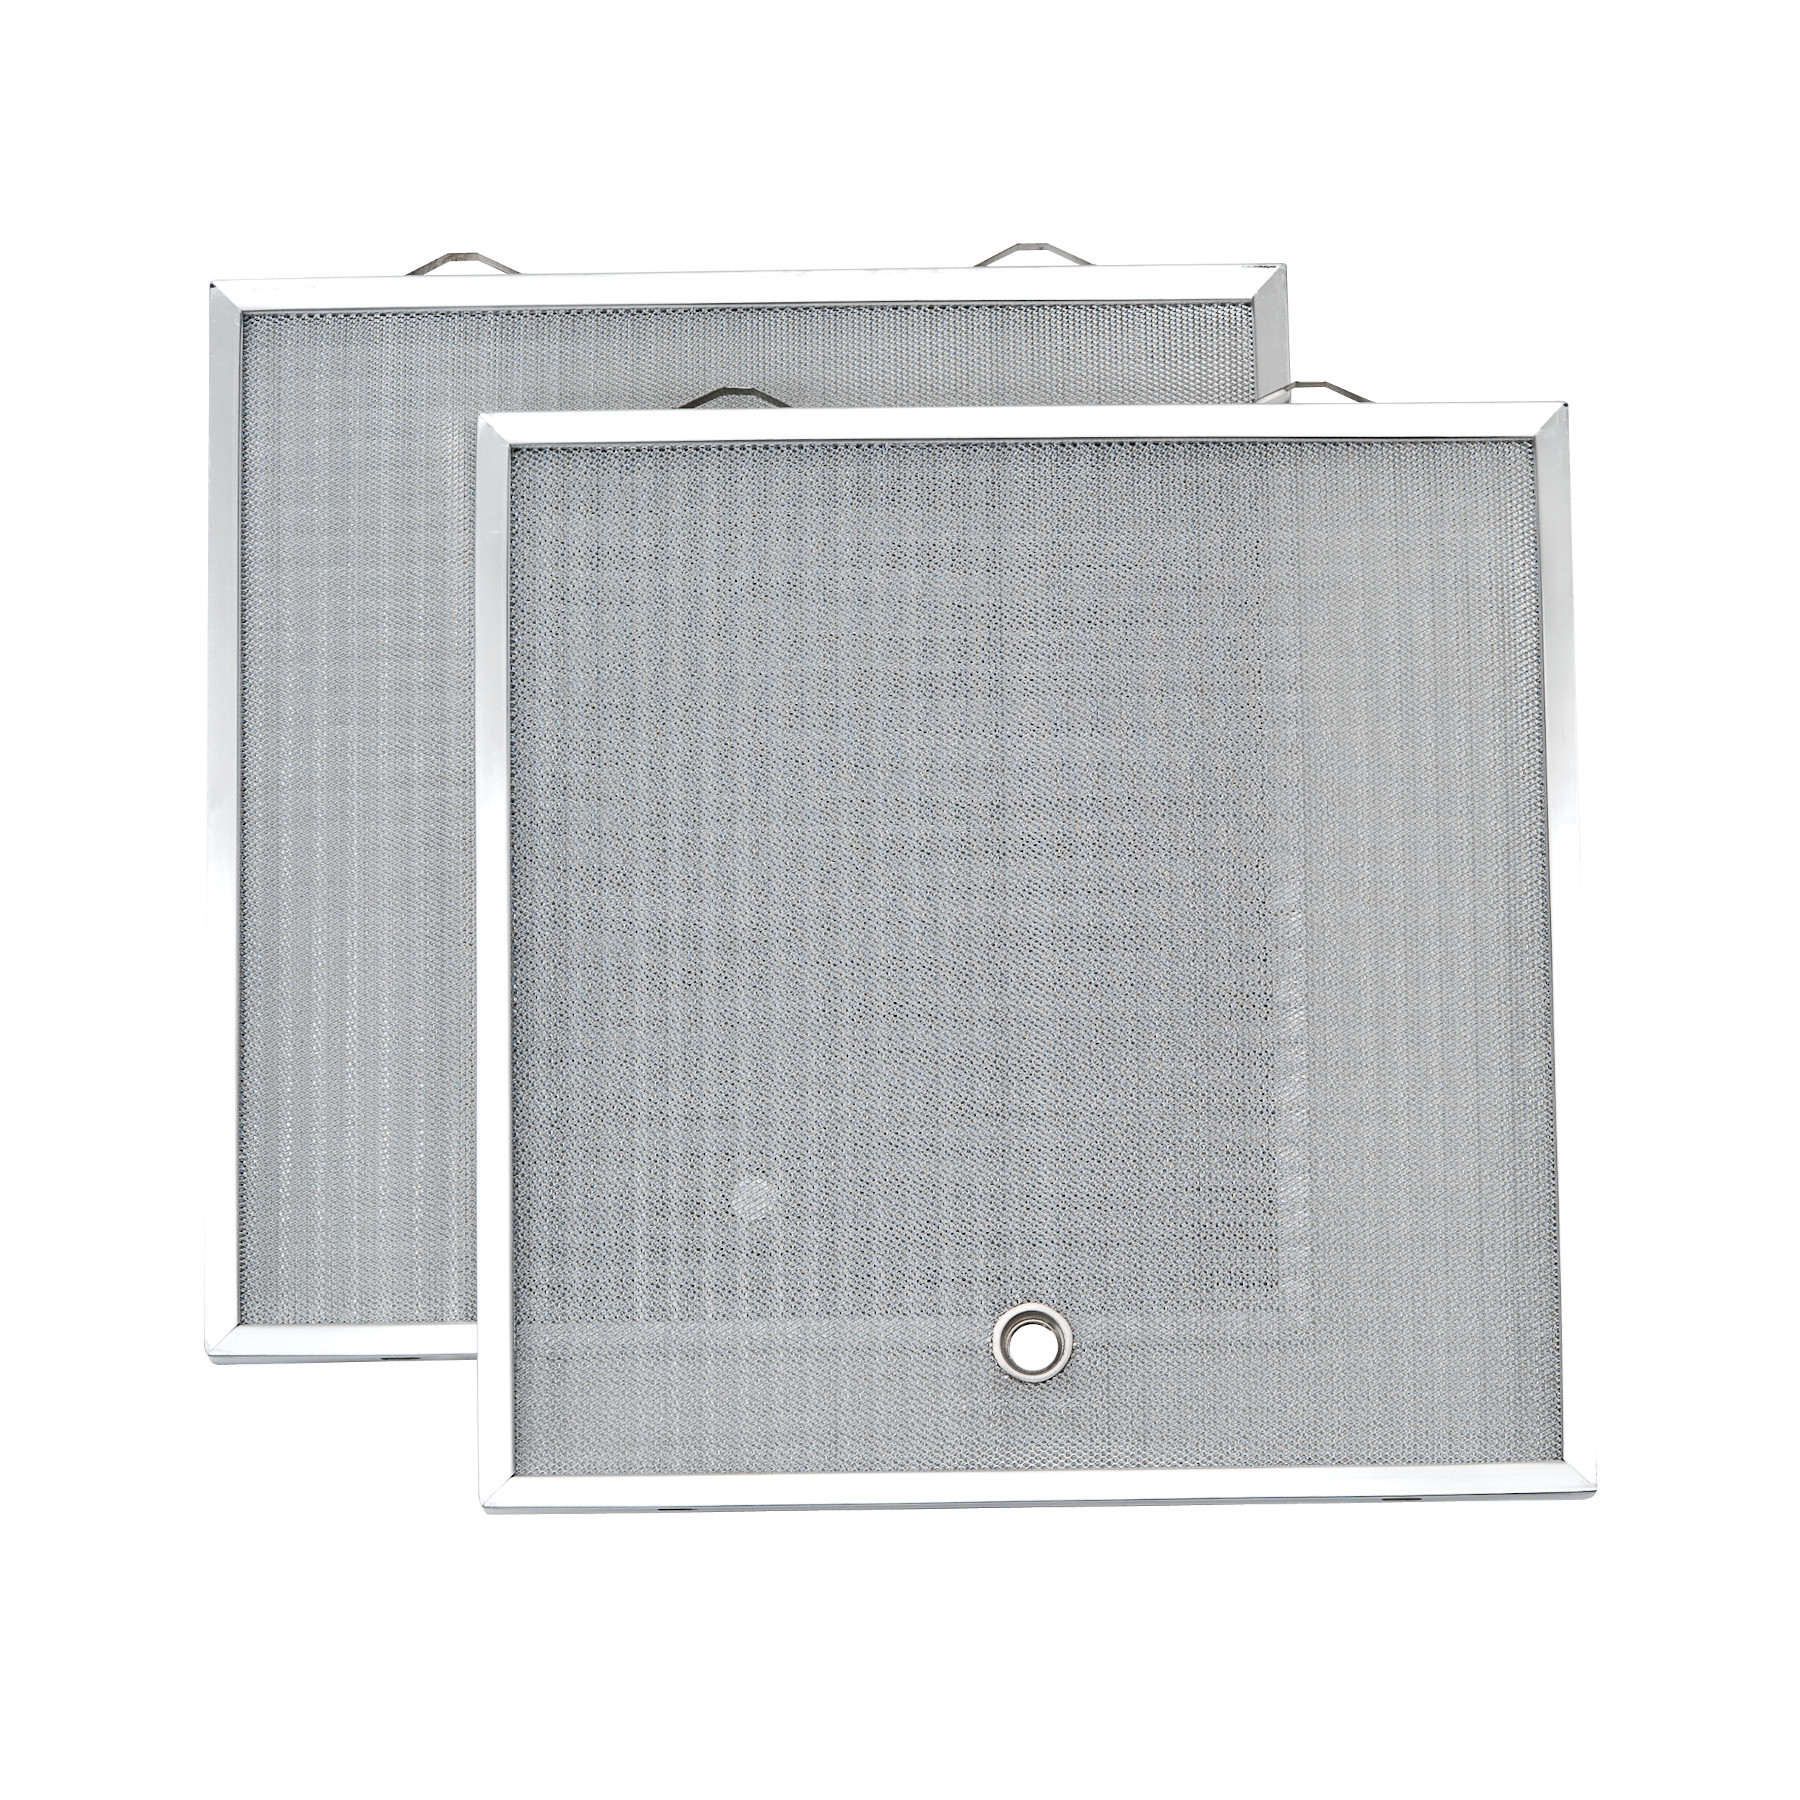 Aluminum Replacement Grease Filter for 30-Inch QDE Series Range Hood